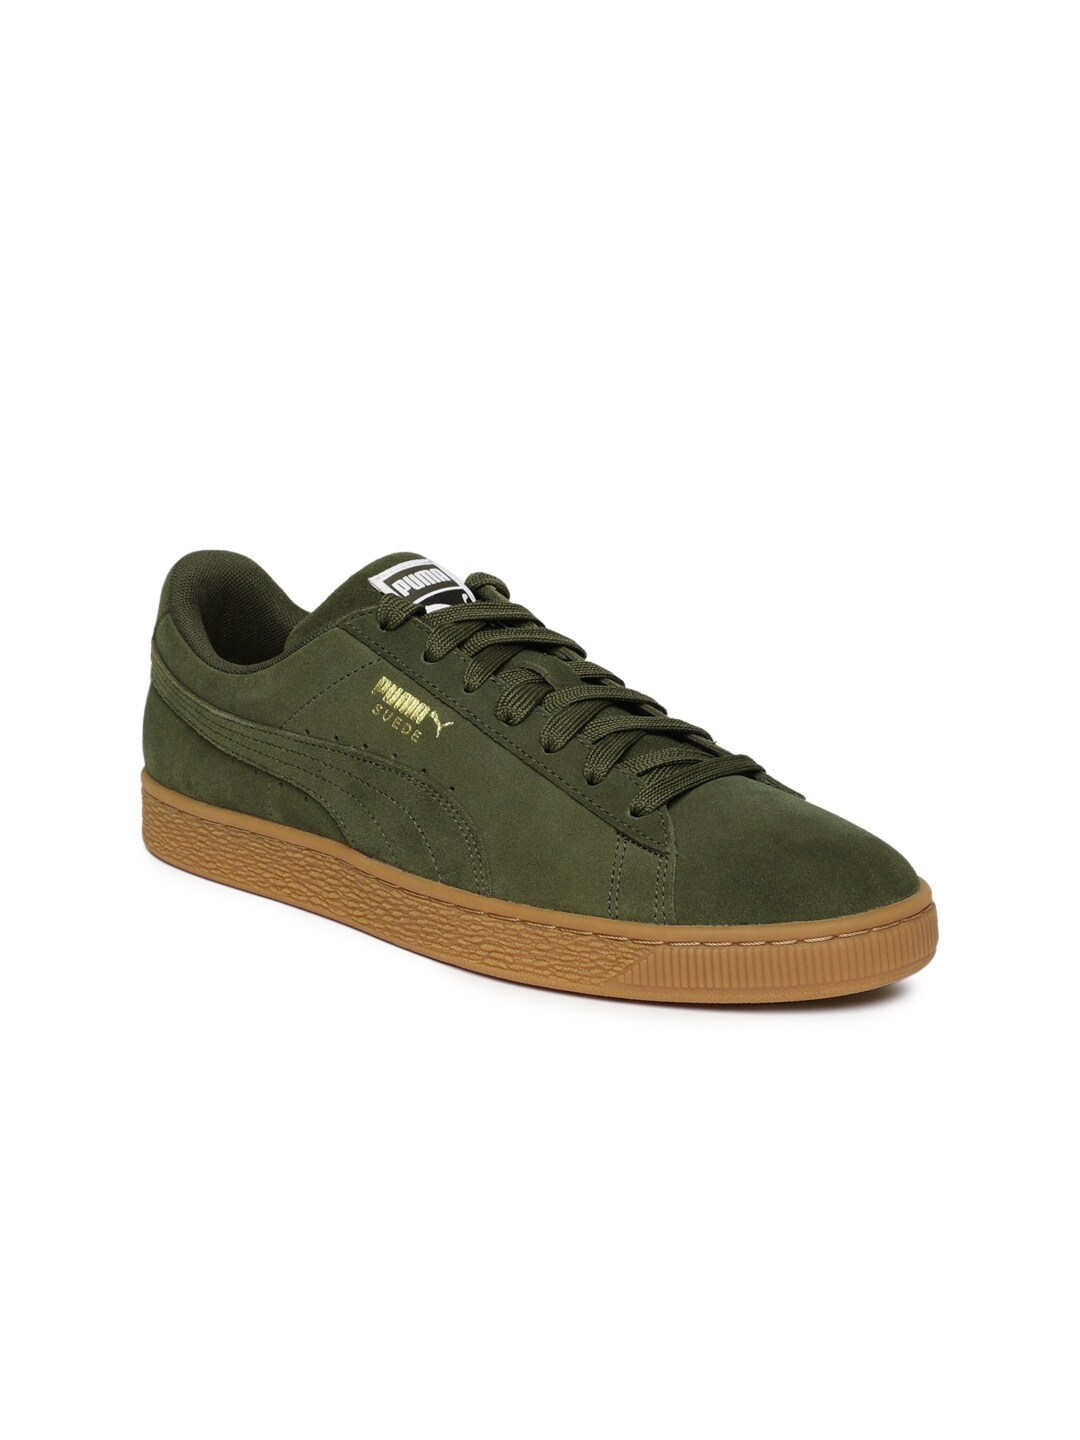 the latest c7336 a459b Puma Men Olive Green Suede Classic Sneakers